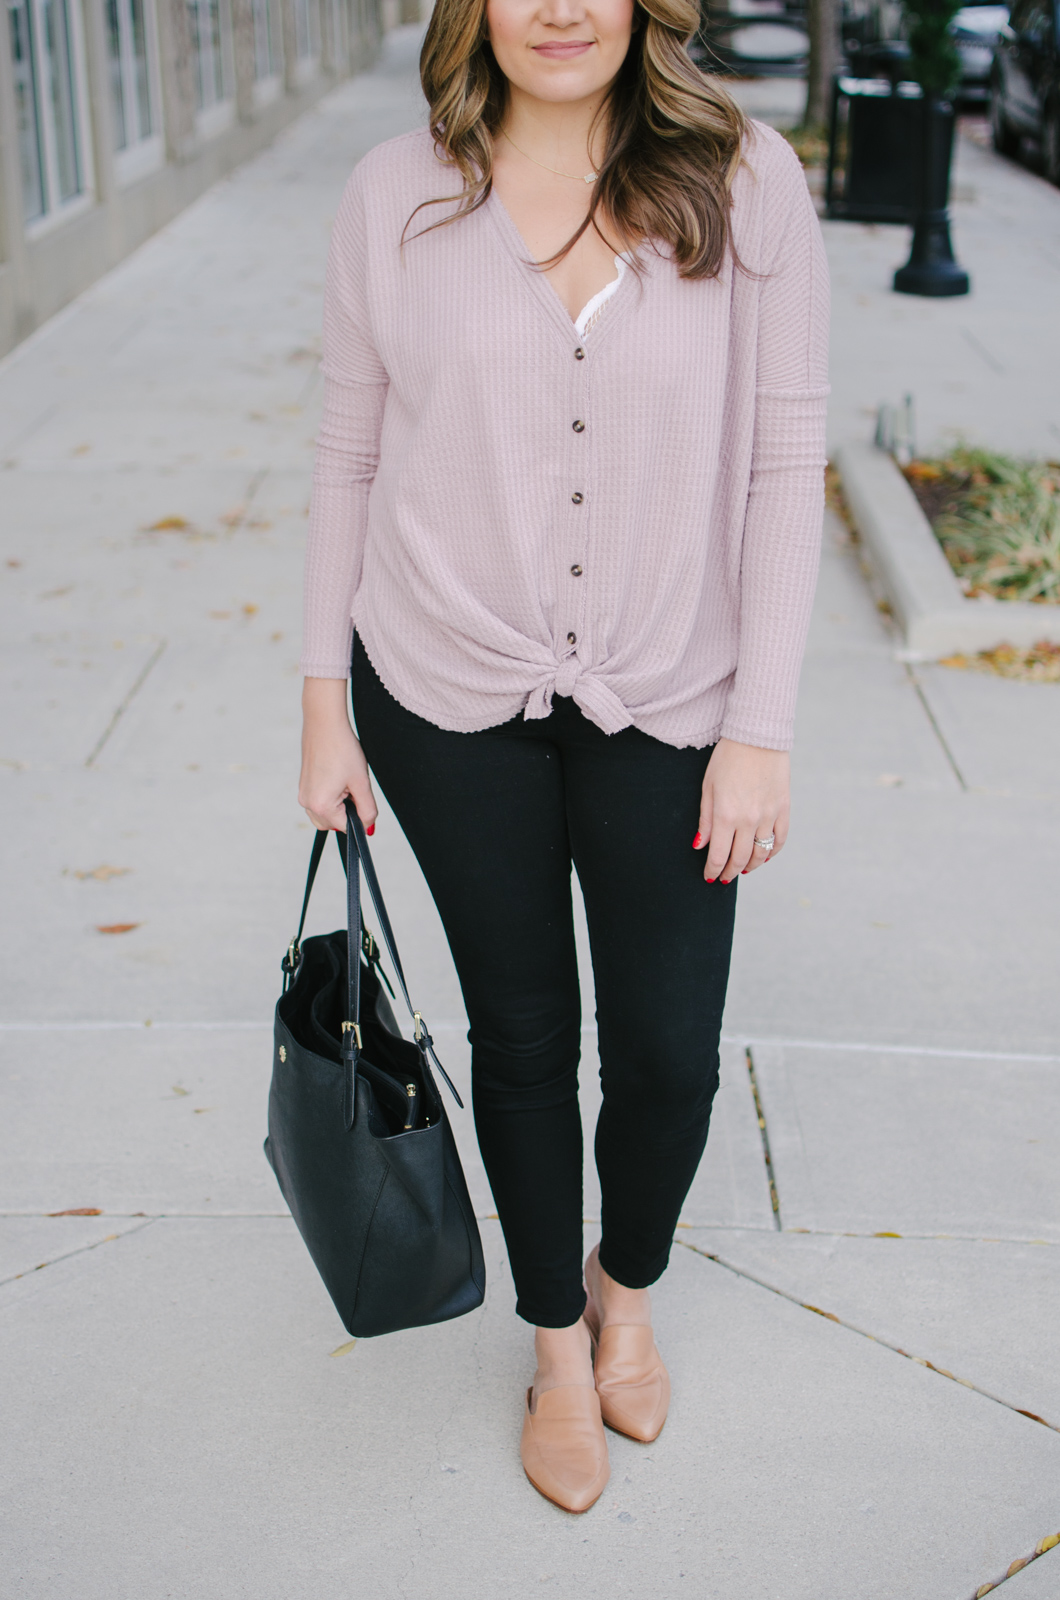 thermal shirt outfit - this tie thermal is adorable! | See more Winter outfit ideas or get outfit details by clicking through to bylaurenm.com!